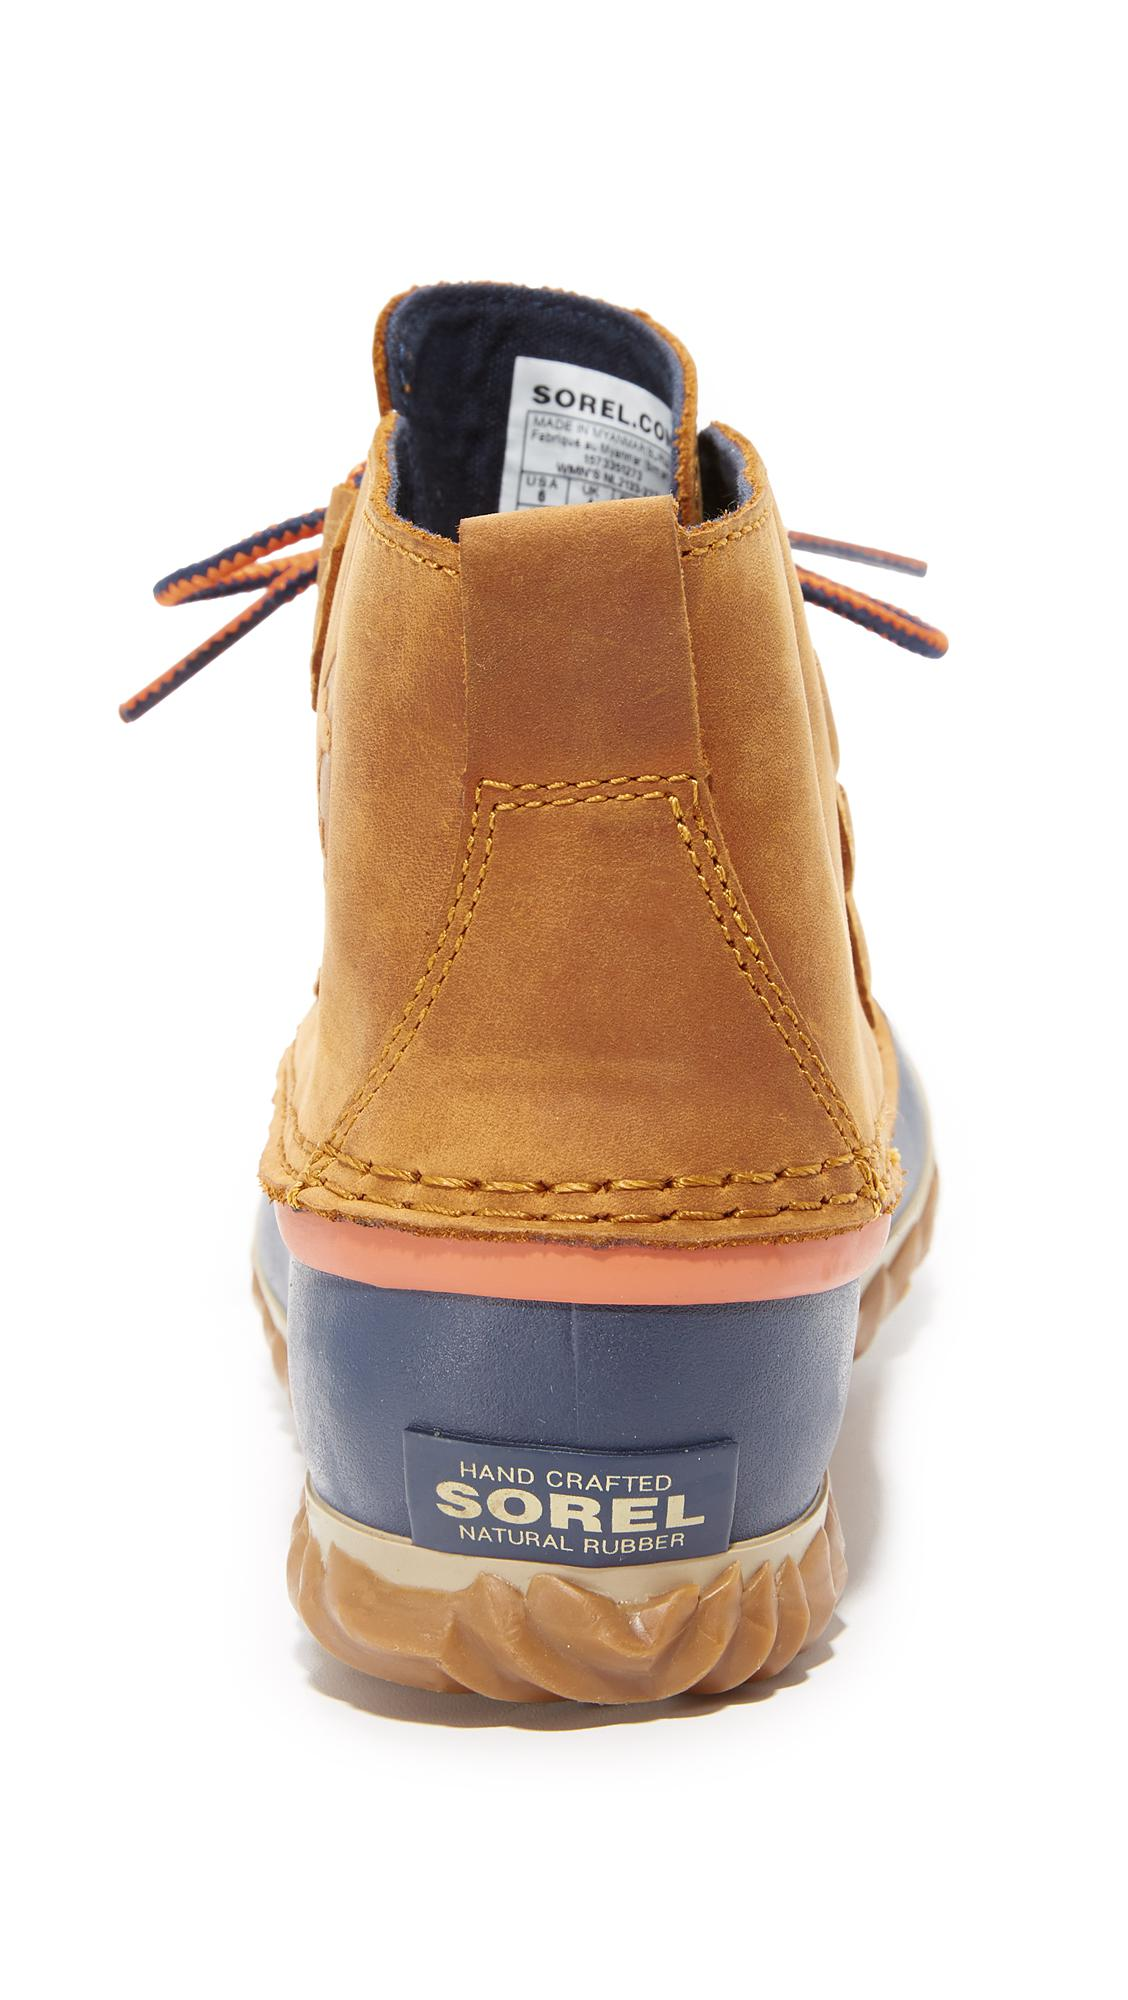 Sorel Out N About Leather Rain Snow Boot in Caramel (Blue)